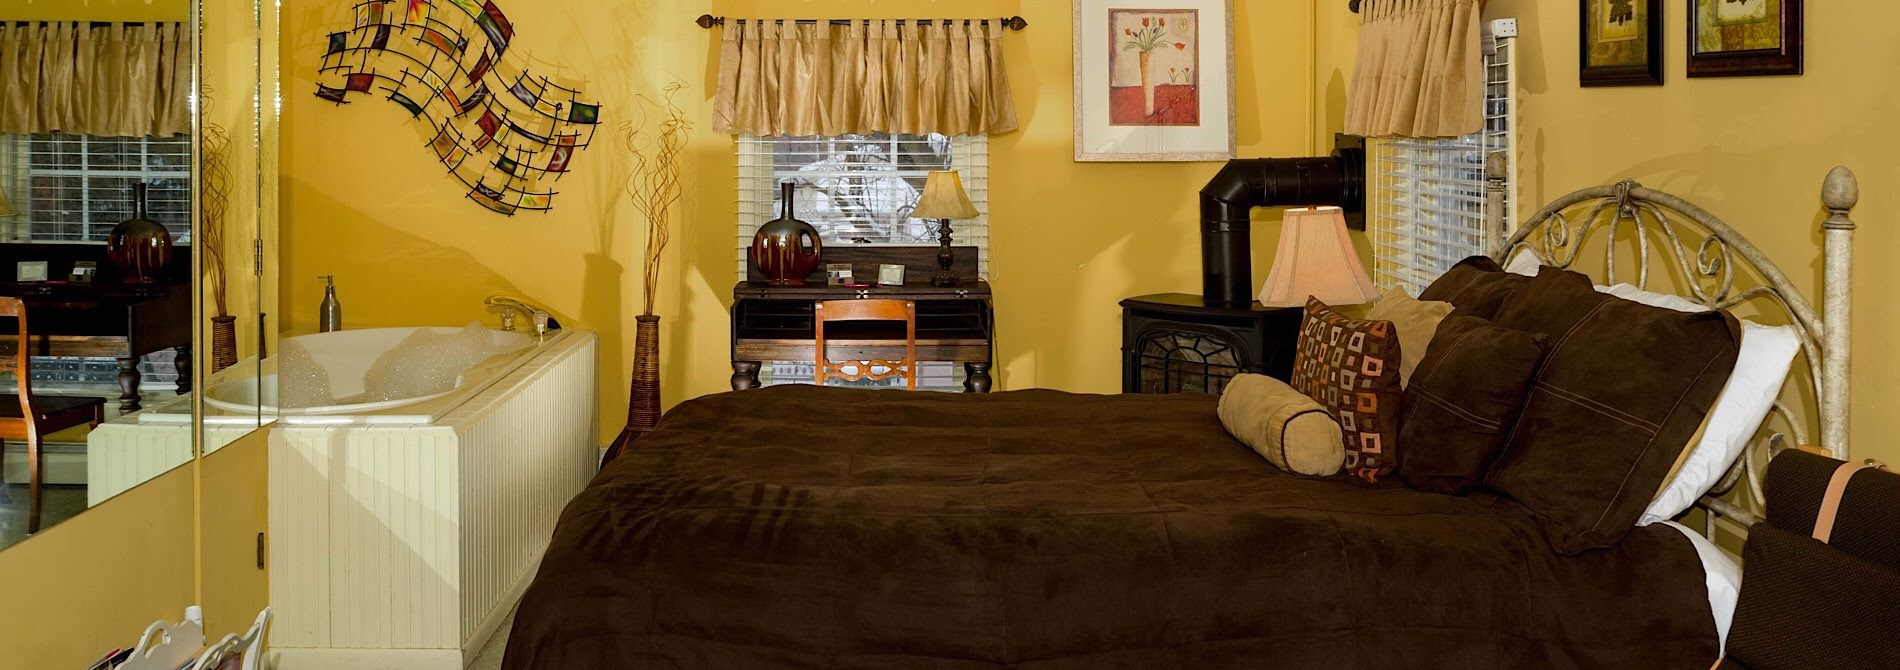 modern Bedroom with yellow walls and brown comforter